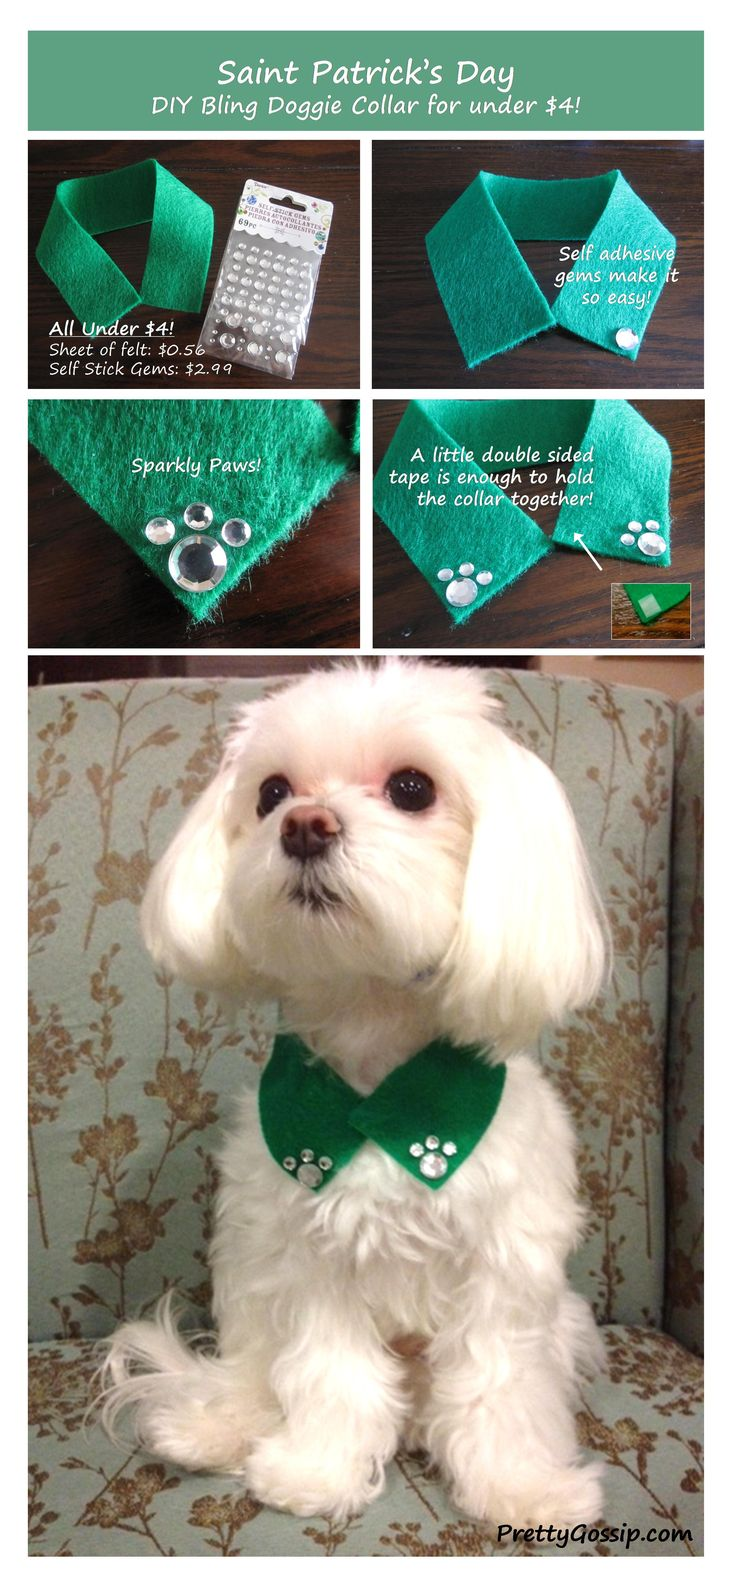 Saint Patrick's Day Inspired DIY Bling Doggie Collar | Pretty Gossip